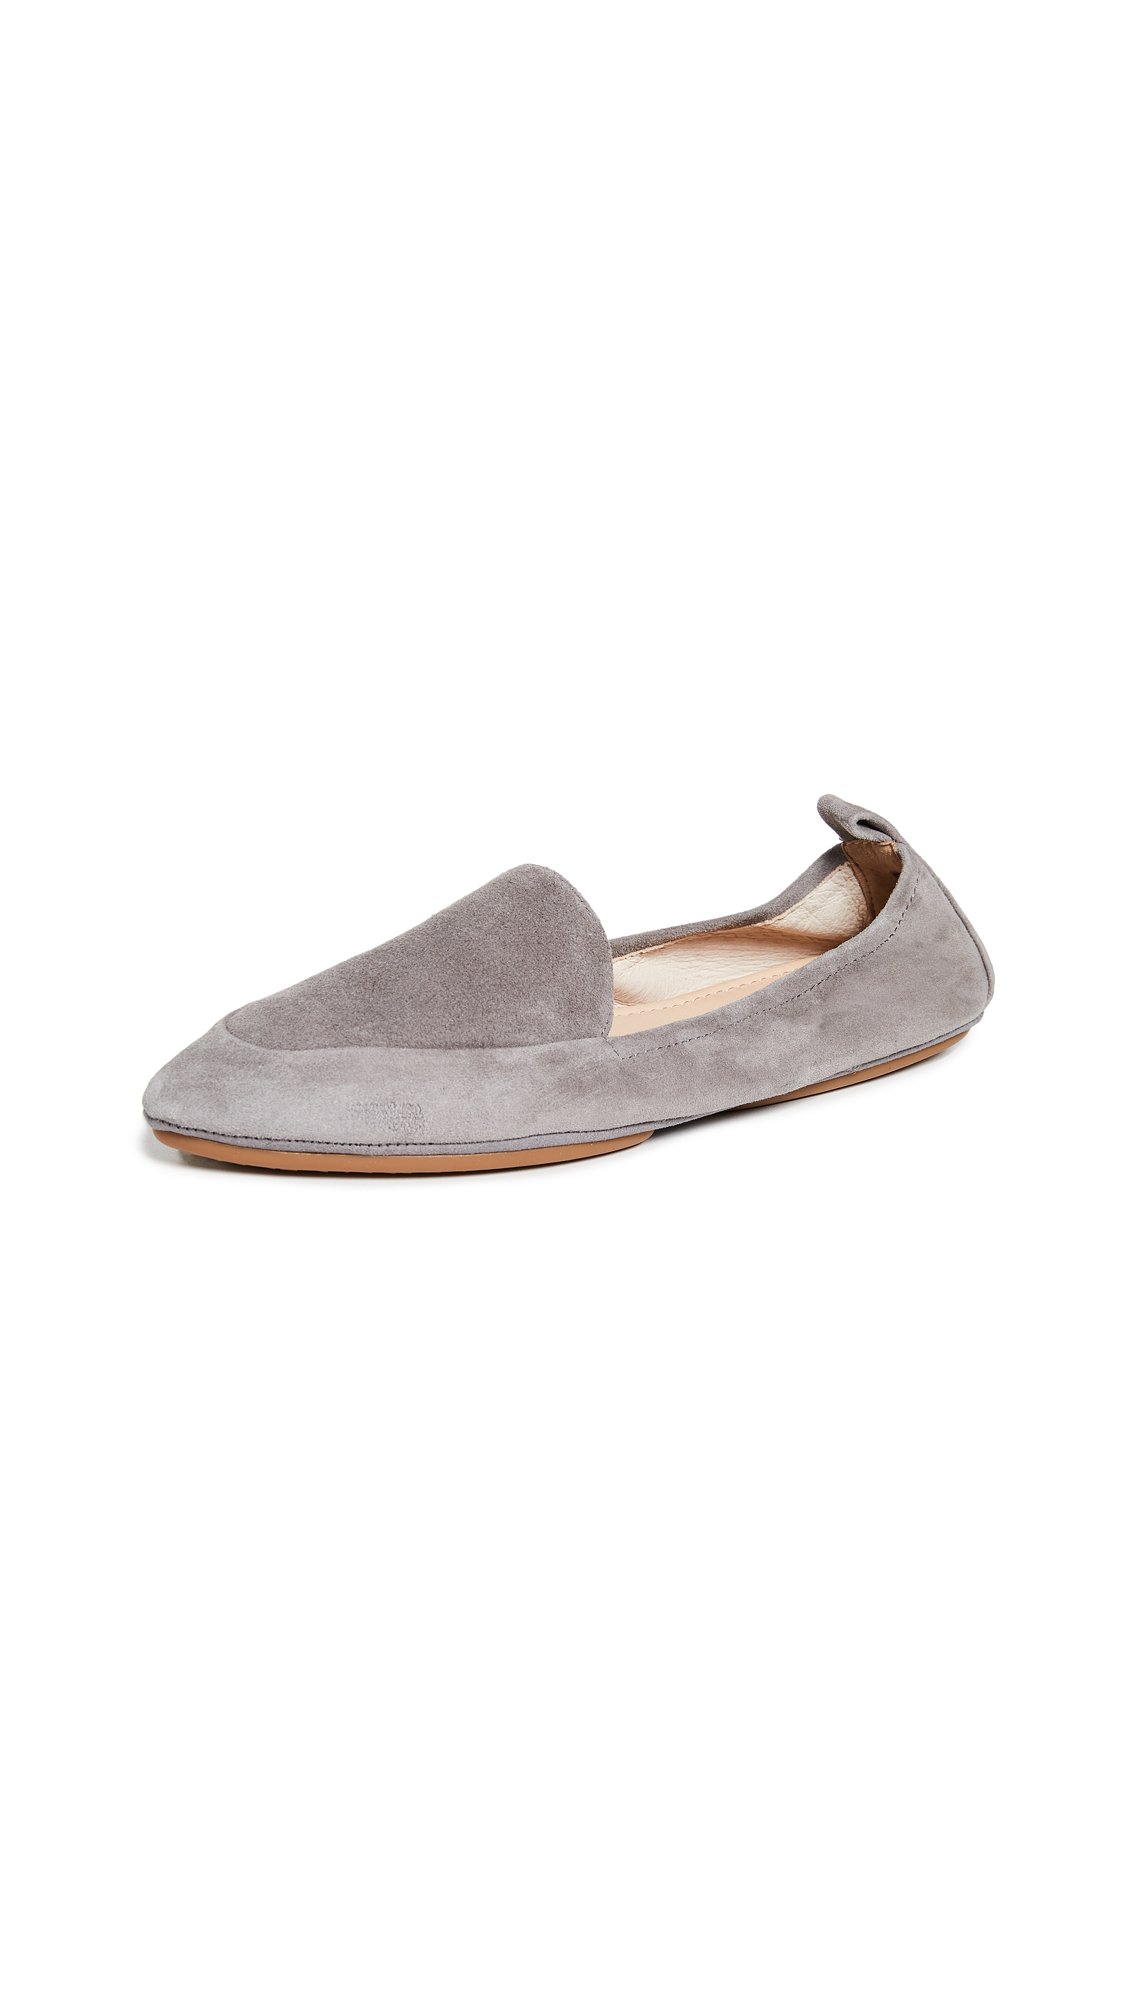 Yosi Samra Skyler Loafers - Dark Grey